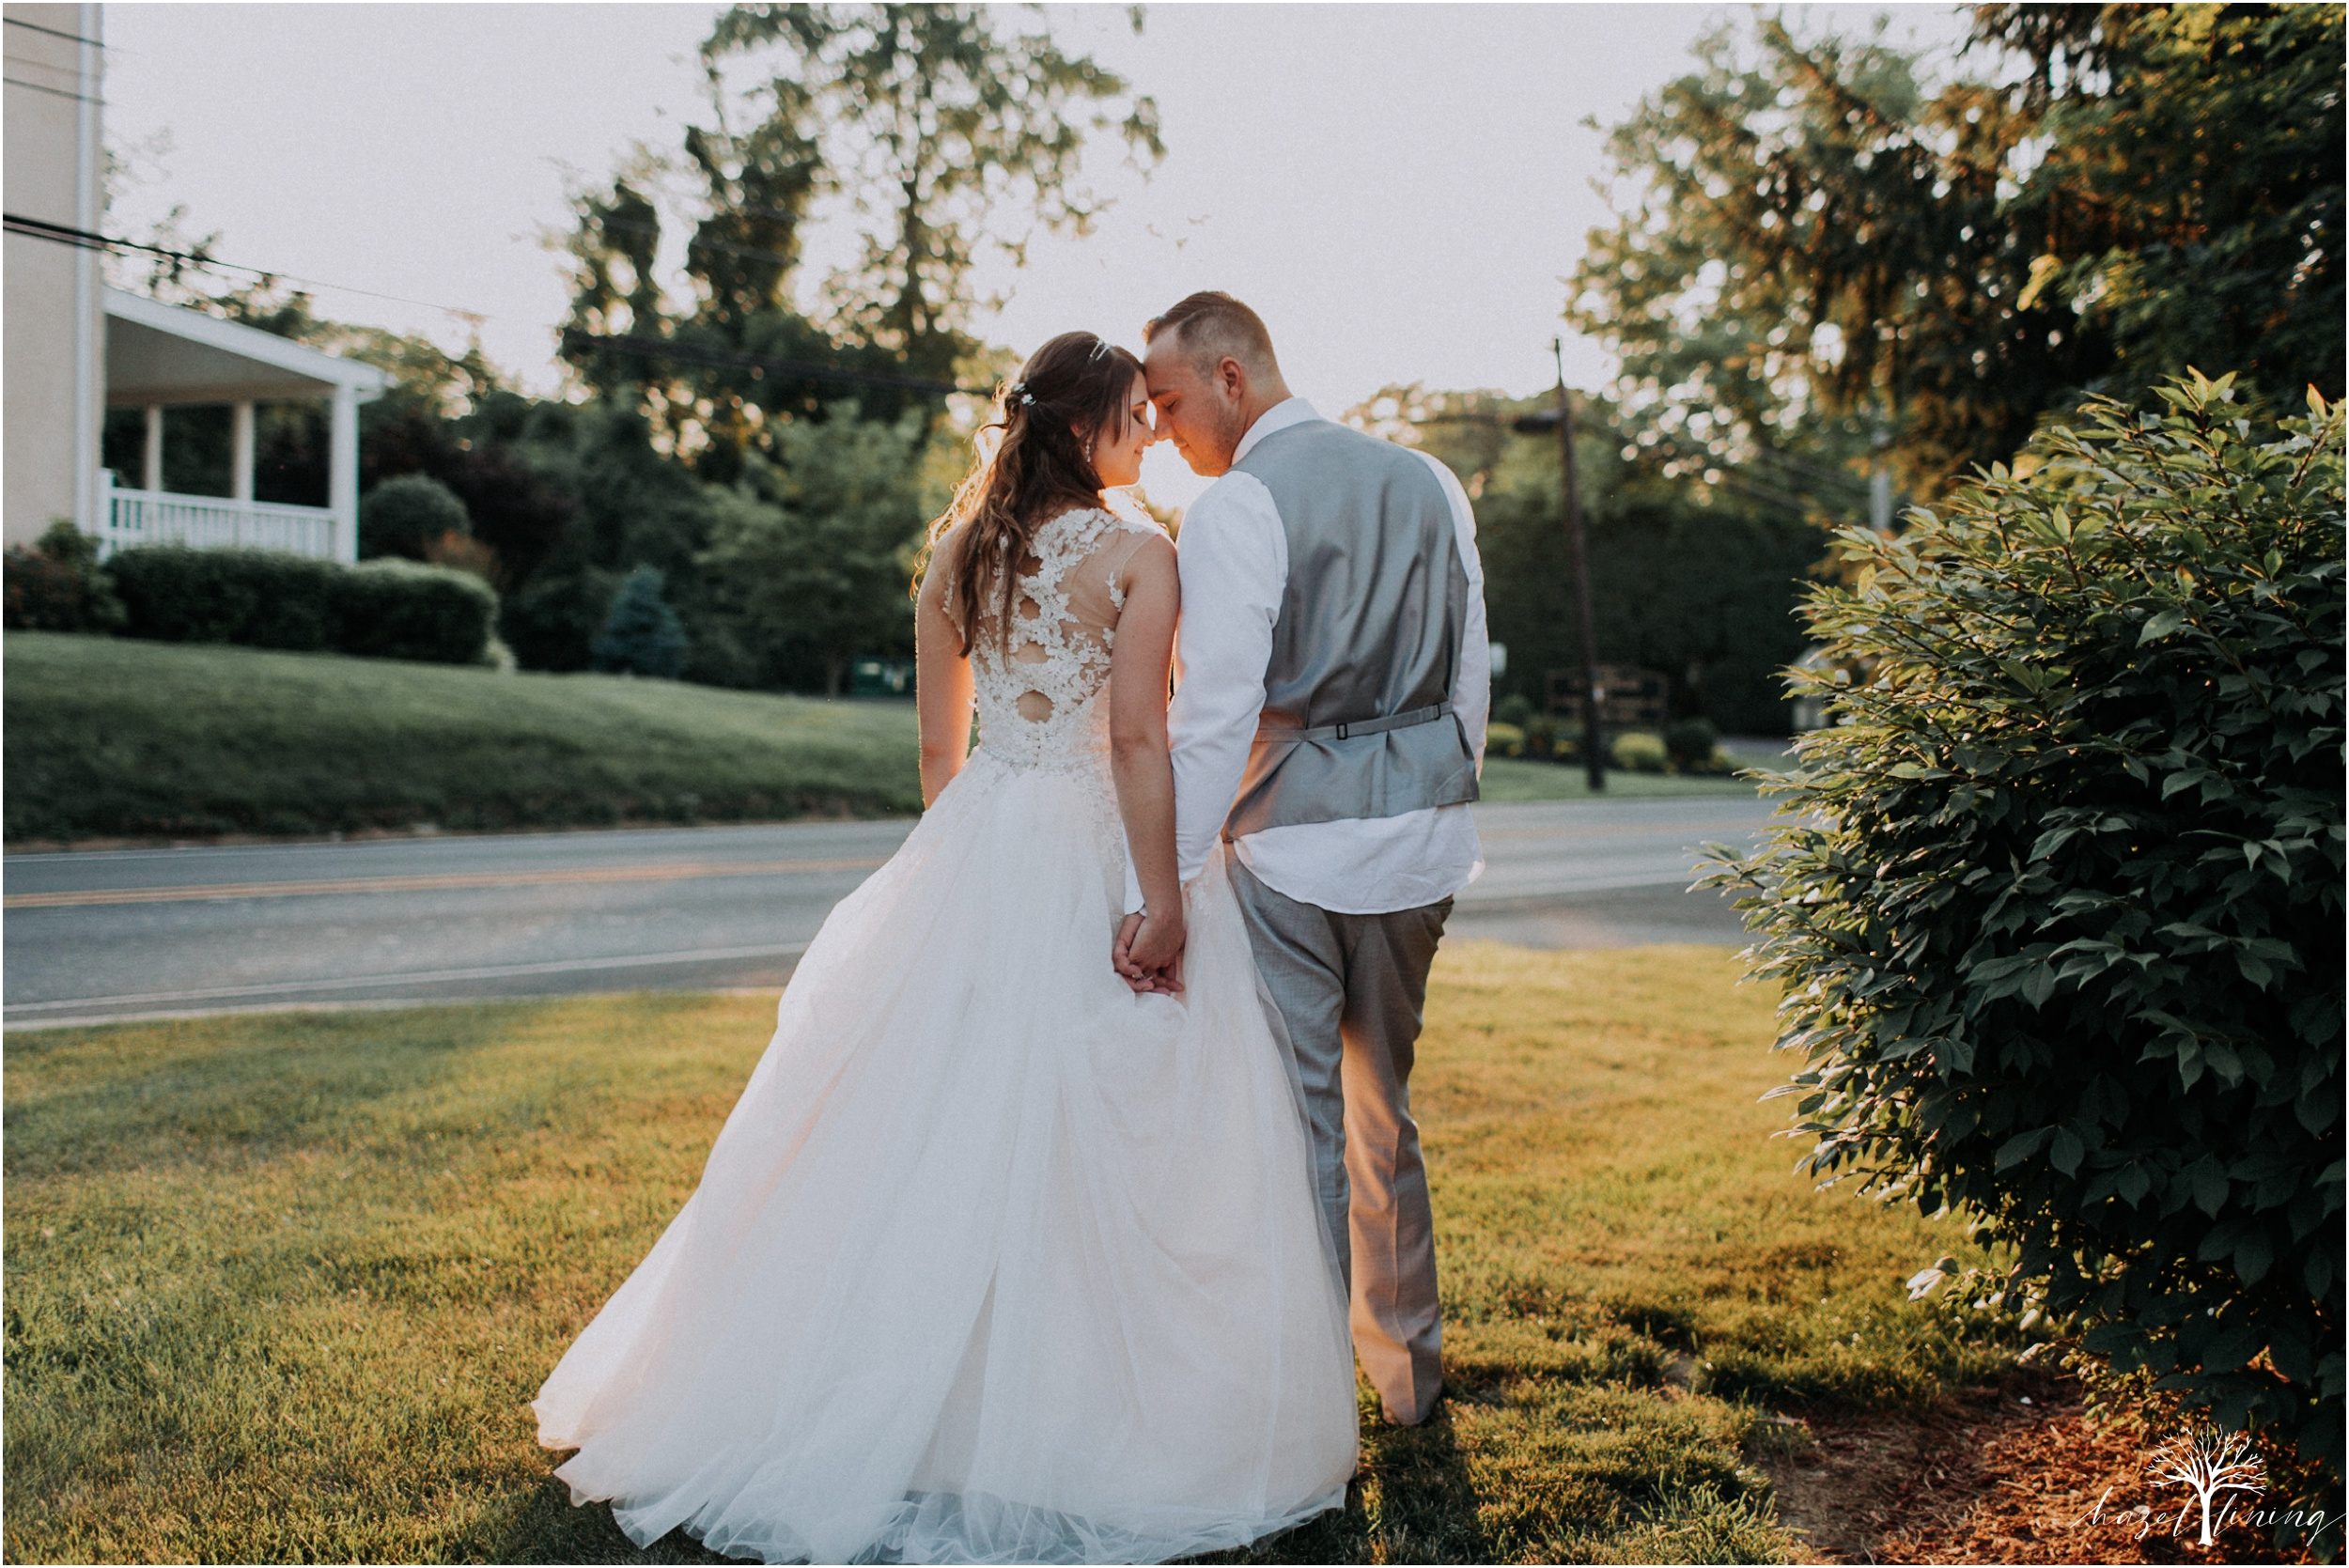 cassie-depinto-tyler-bodder-playwicki-farm-buck-hotel-featserville-trevose-pennsylvania-summer-outdoor-wedding-hazel-lining-travel-wedding-elopement-photography_0323.jpg